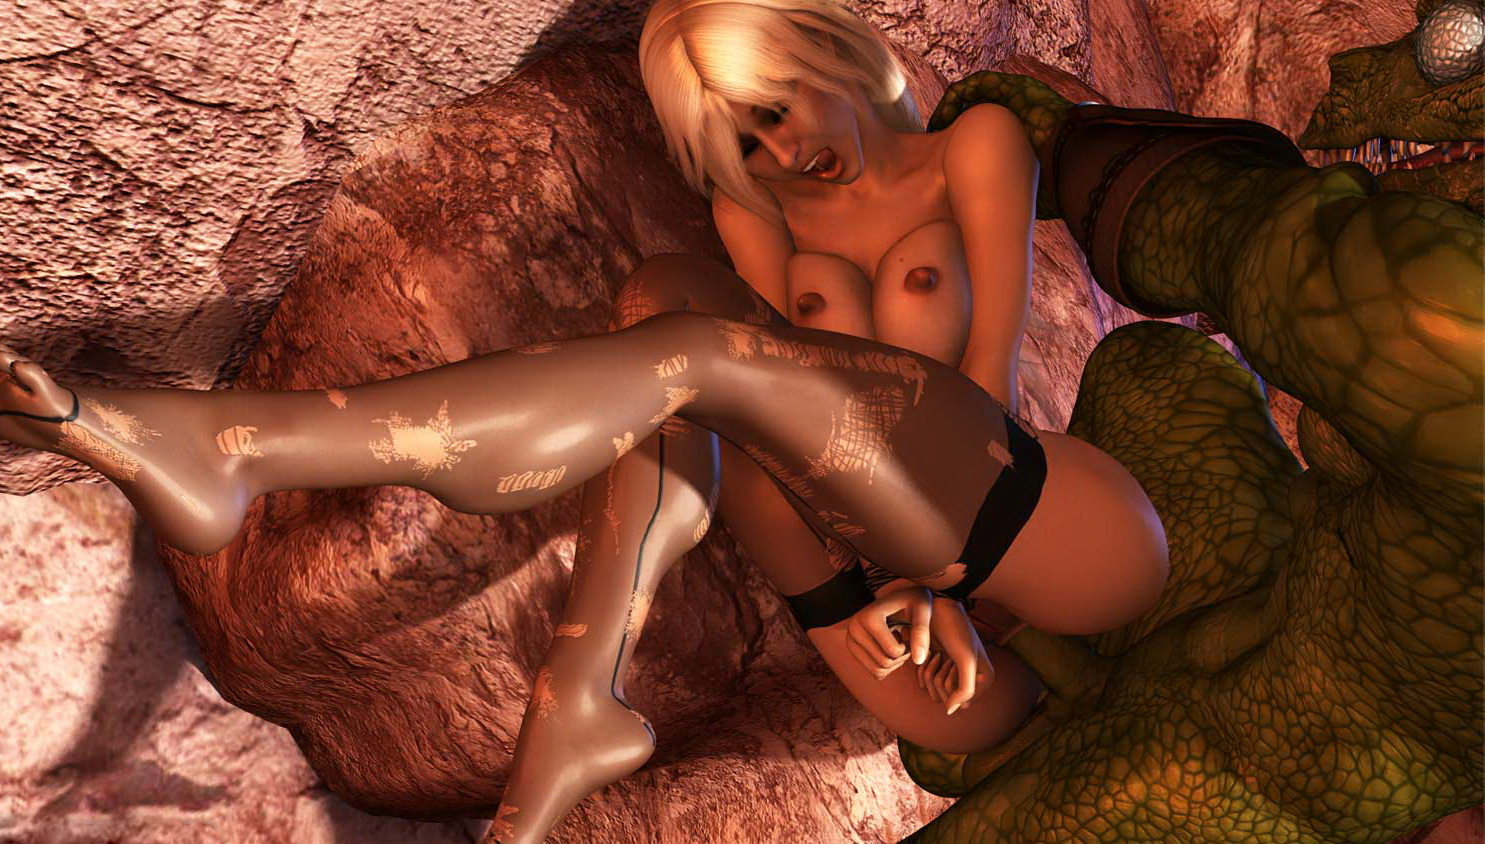 Animated sex galleries adult pic